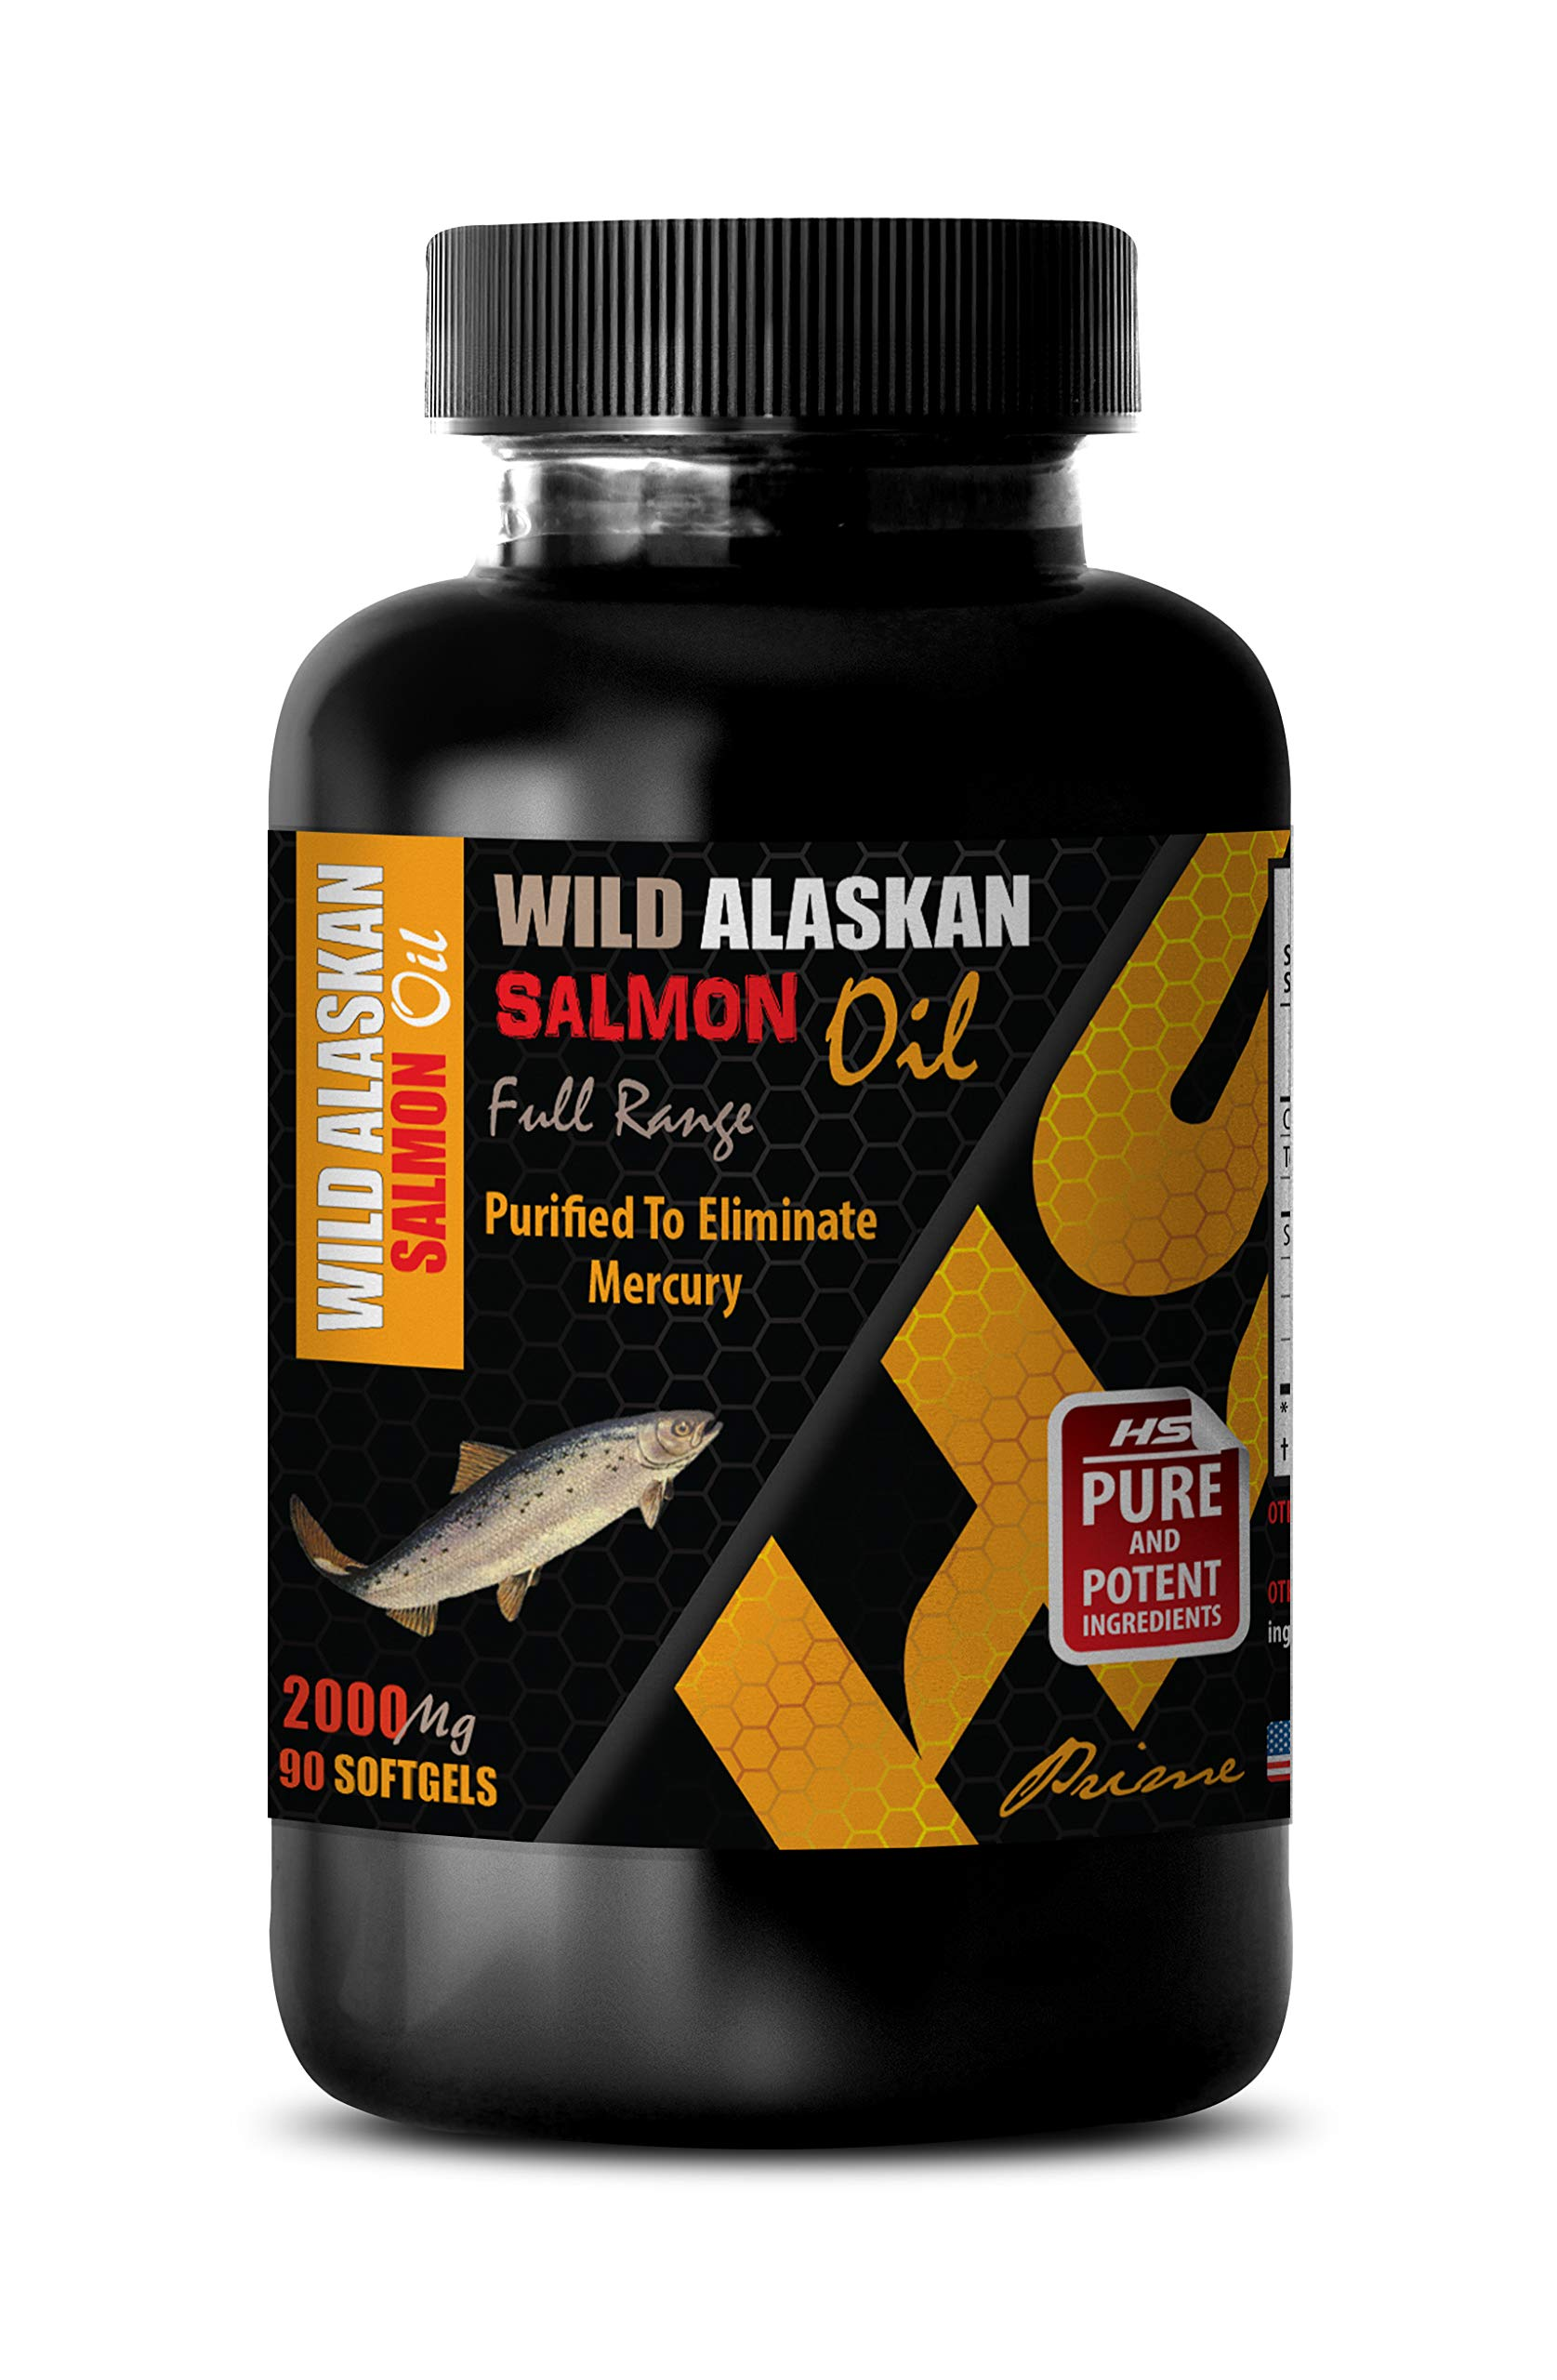 Brain Function and Focus Pills - Wild Alaskan Salmon Oil - Full Range 2000Mg - Wild Alaskan Salmon Oil for People - 1 Bottle 90 Softgels by HS PRIME